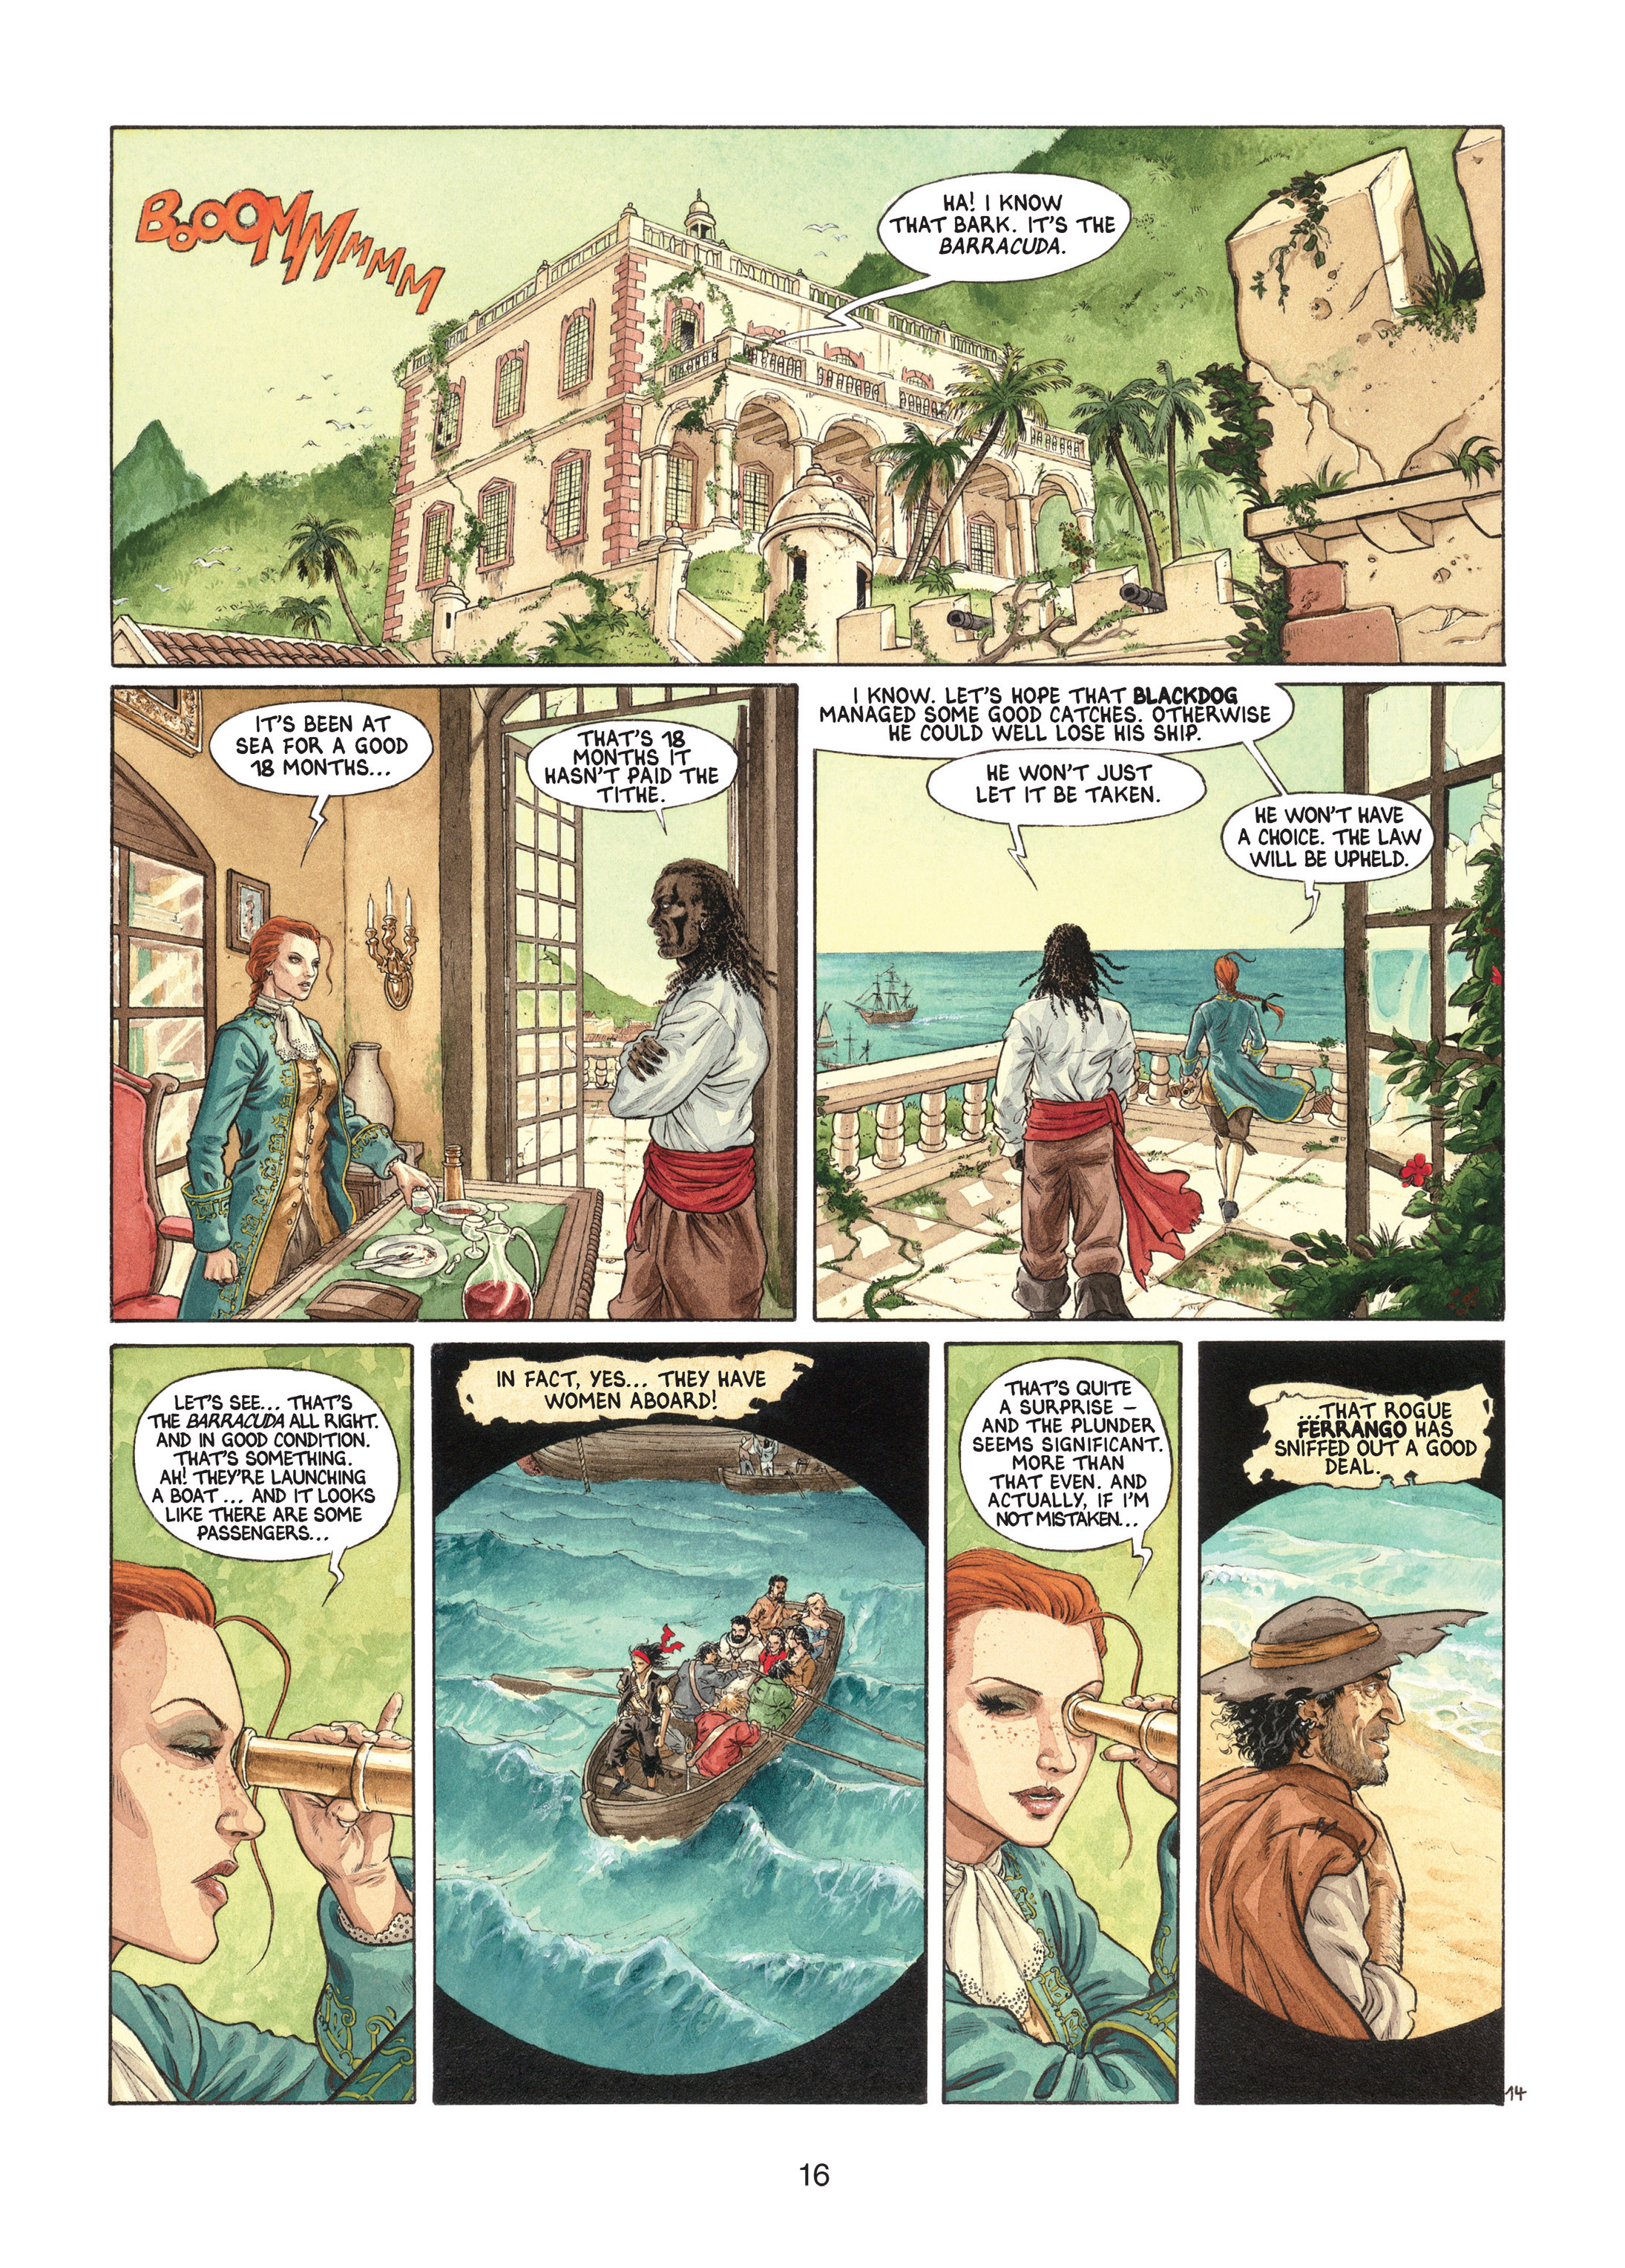 Read online Barracuda comic -  Issue #1 - 16